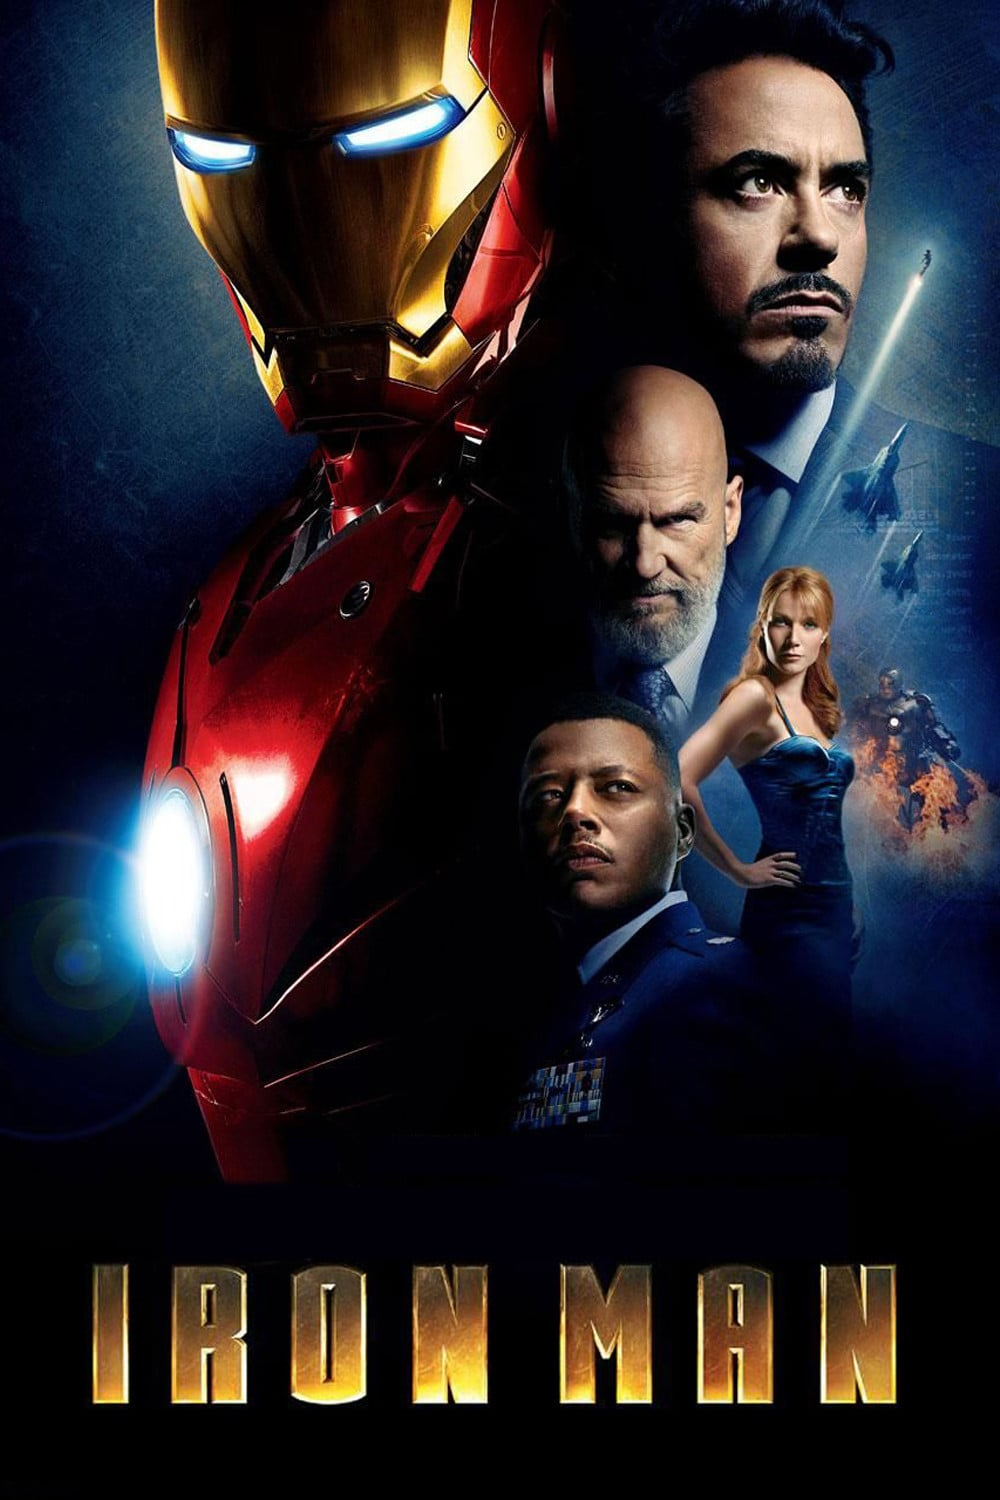 iron man poster high quality HD printable wallpapers 2008 all characters robert downey jr